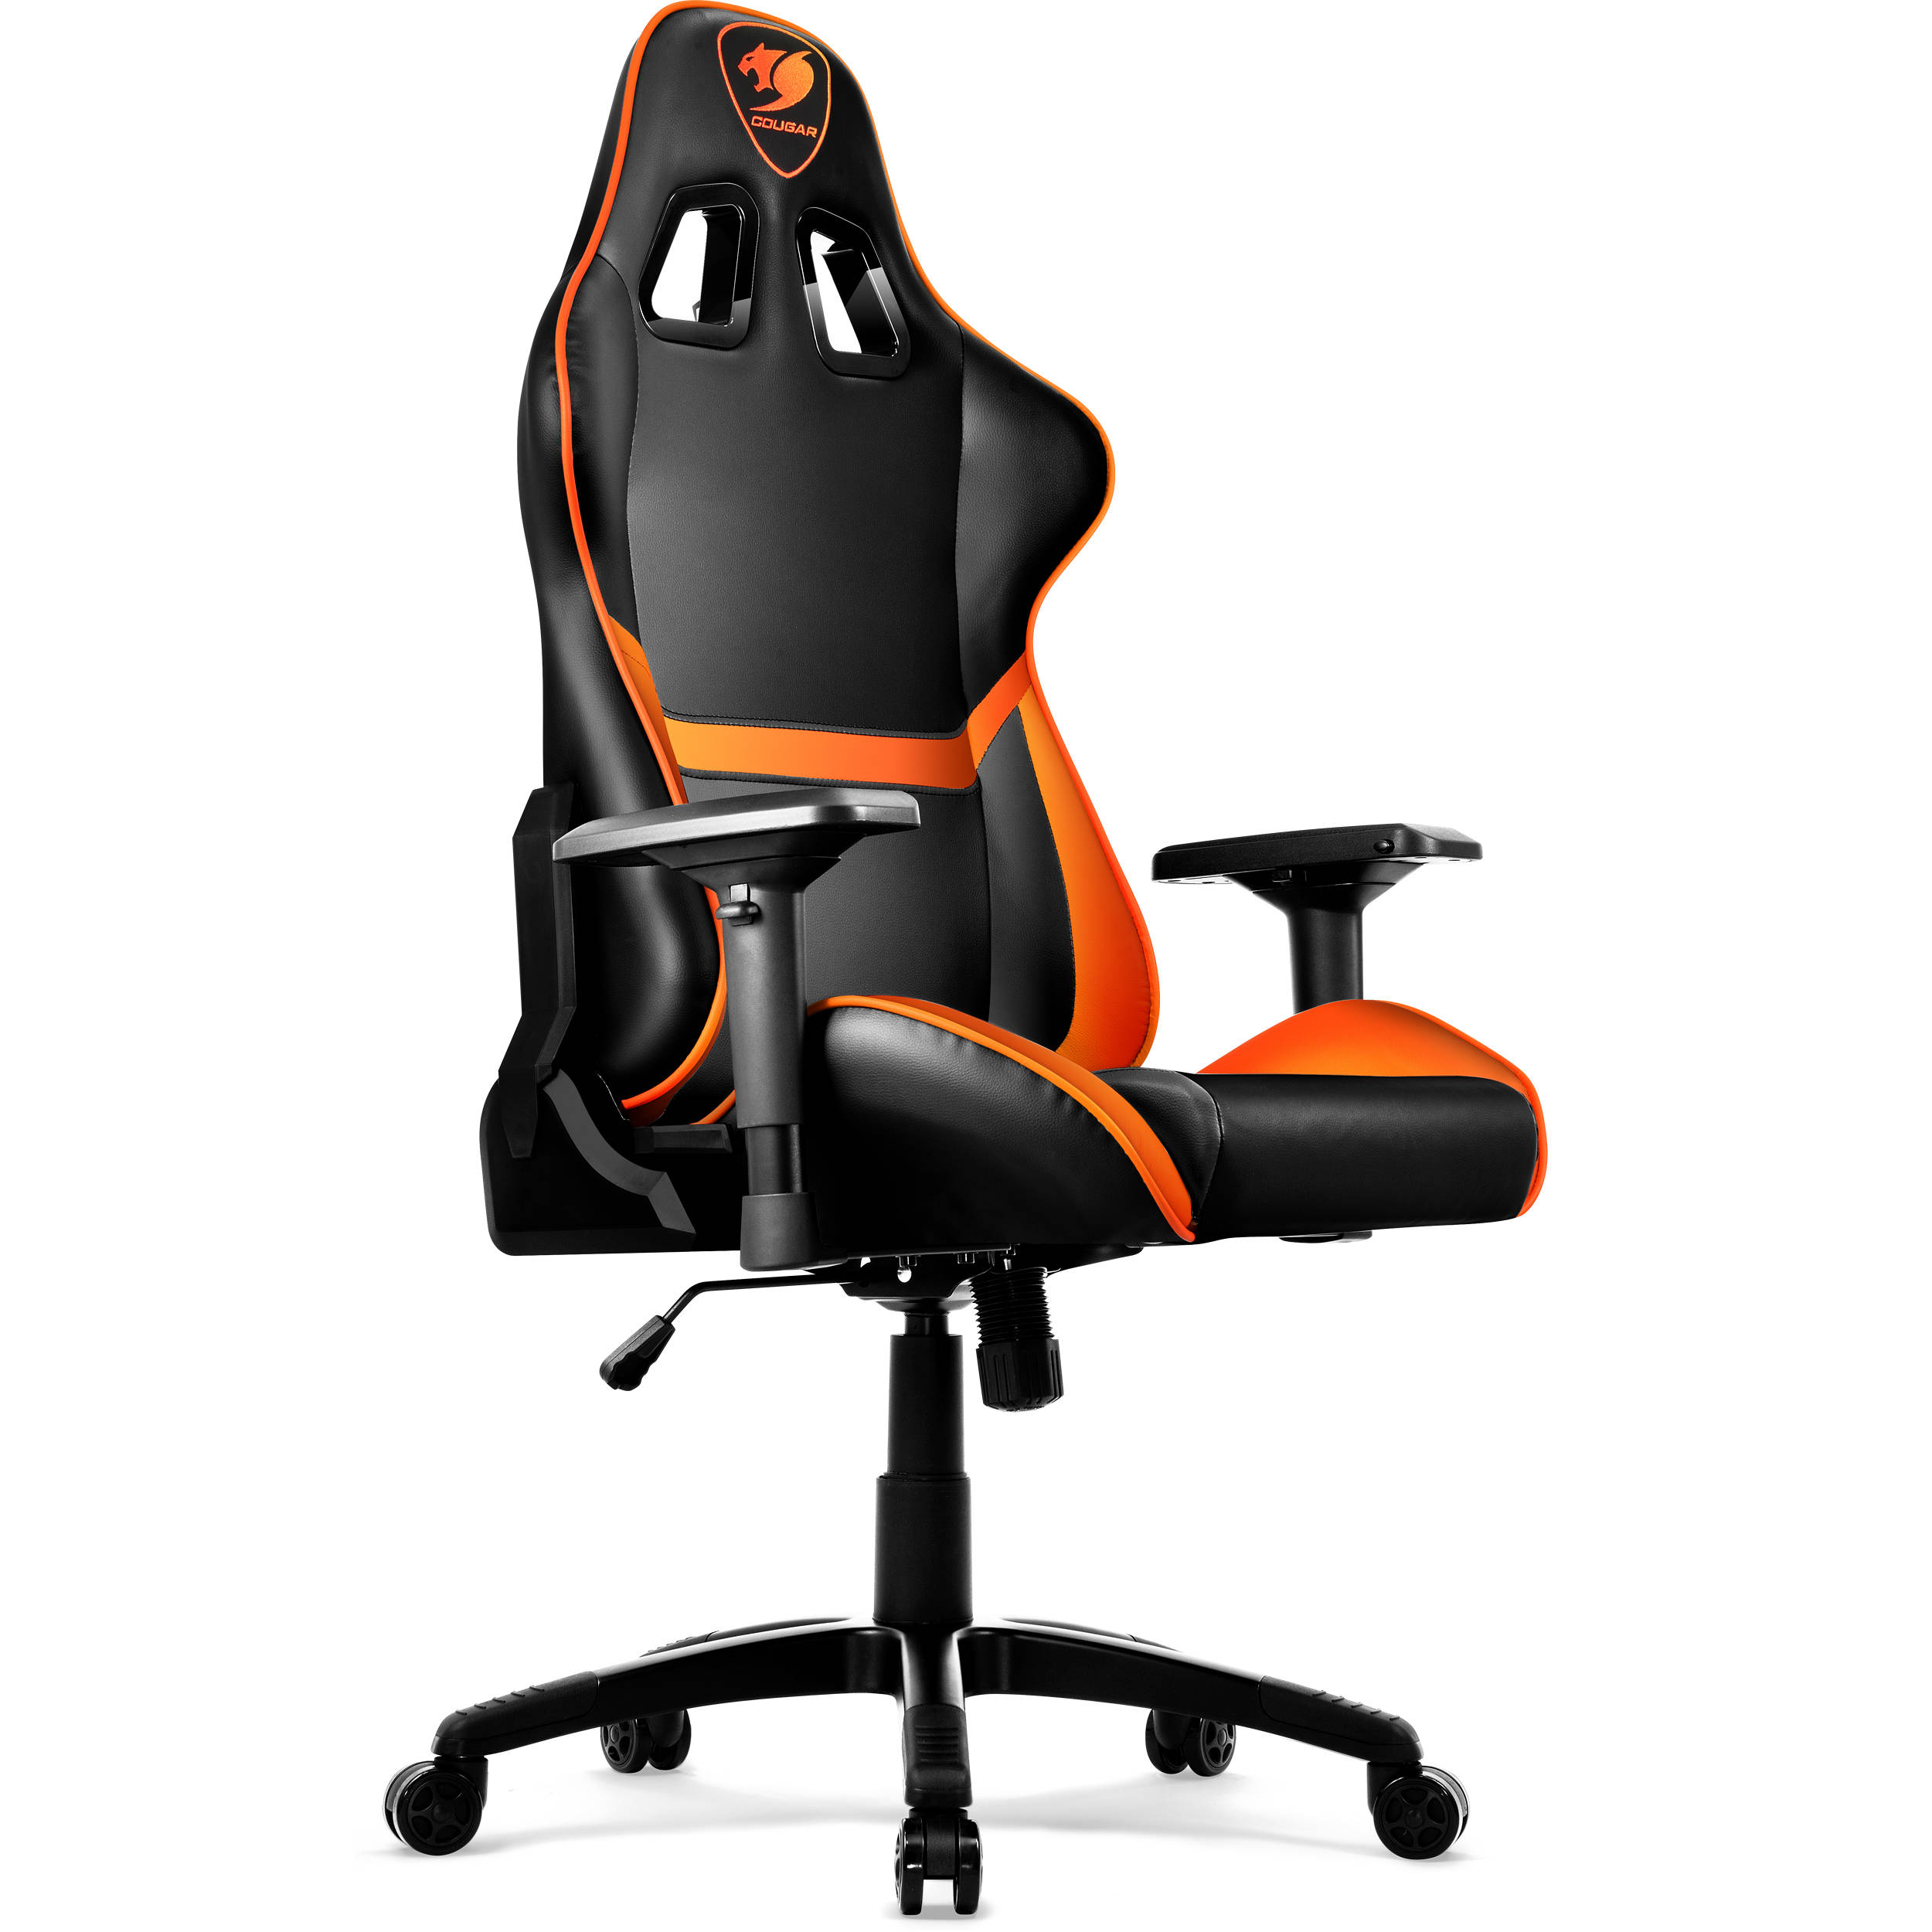 Tremendous Cougar Armor Gaming Chair Black Andrewgaddart Wooden Chair Designs For Living Room Andrewgaddartcom